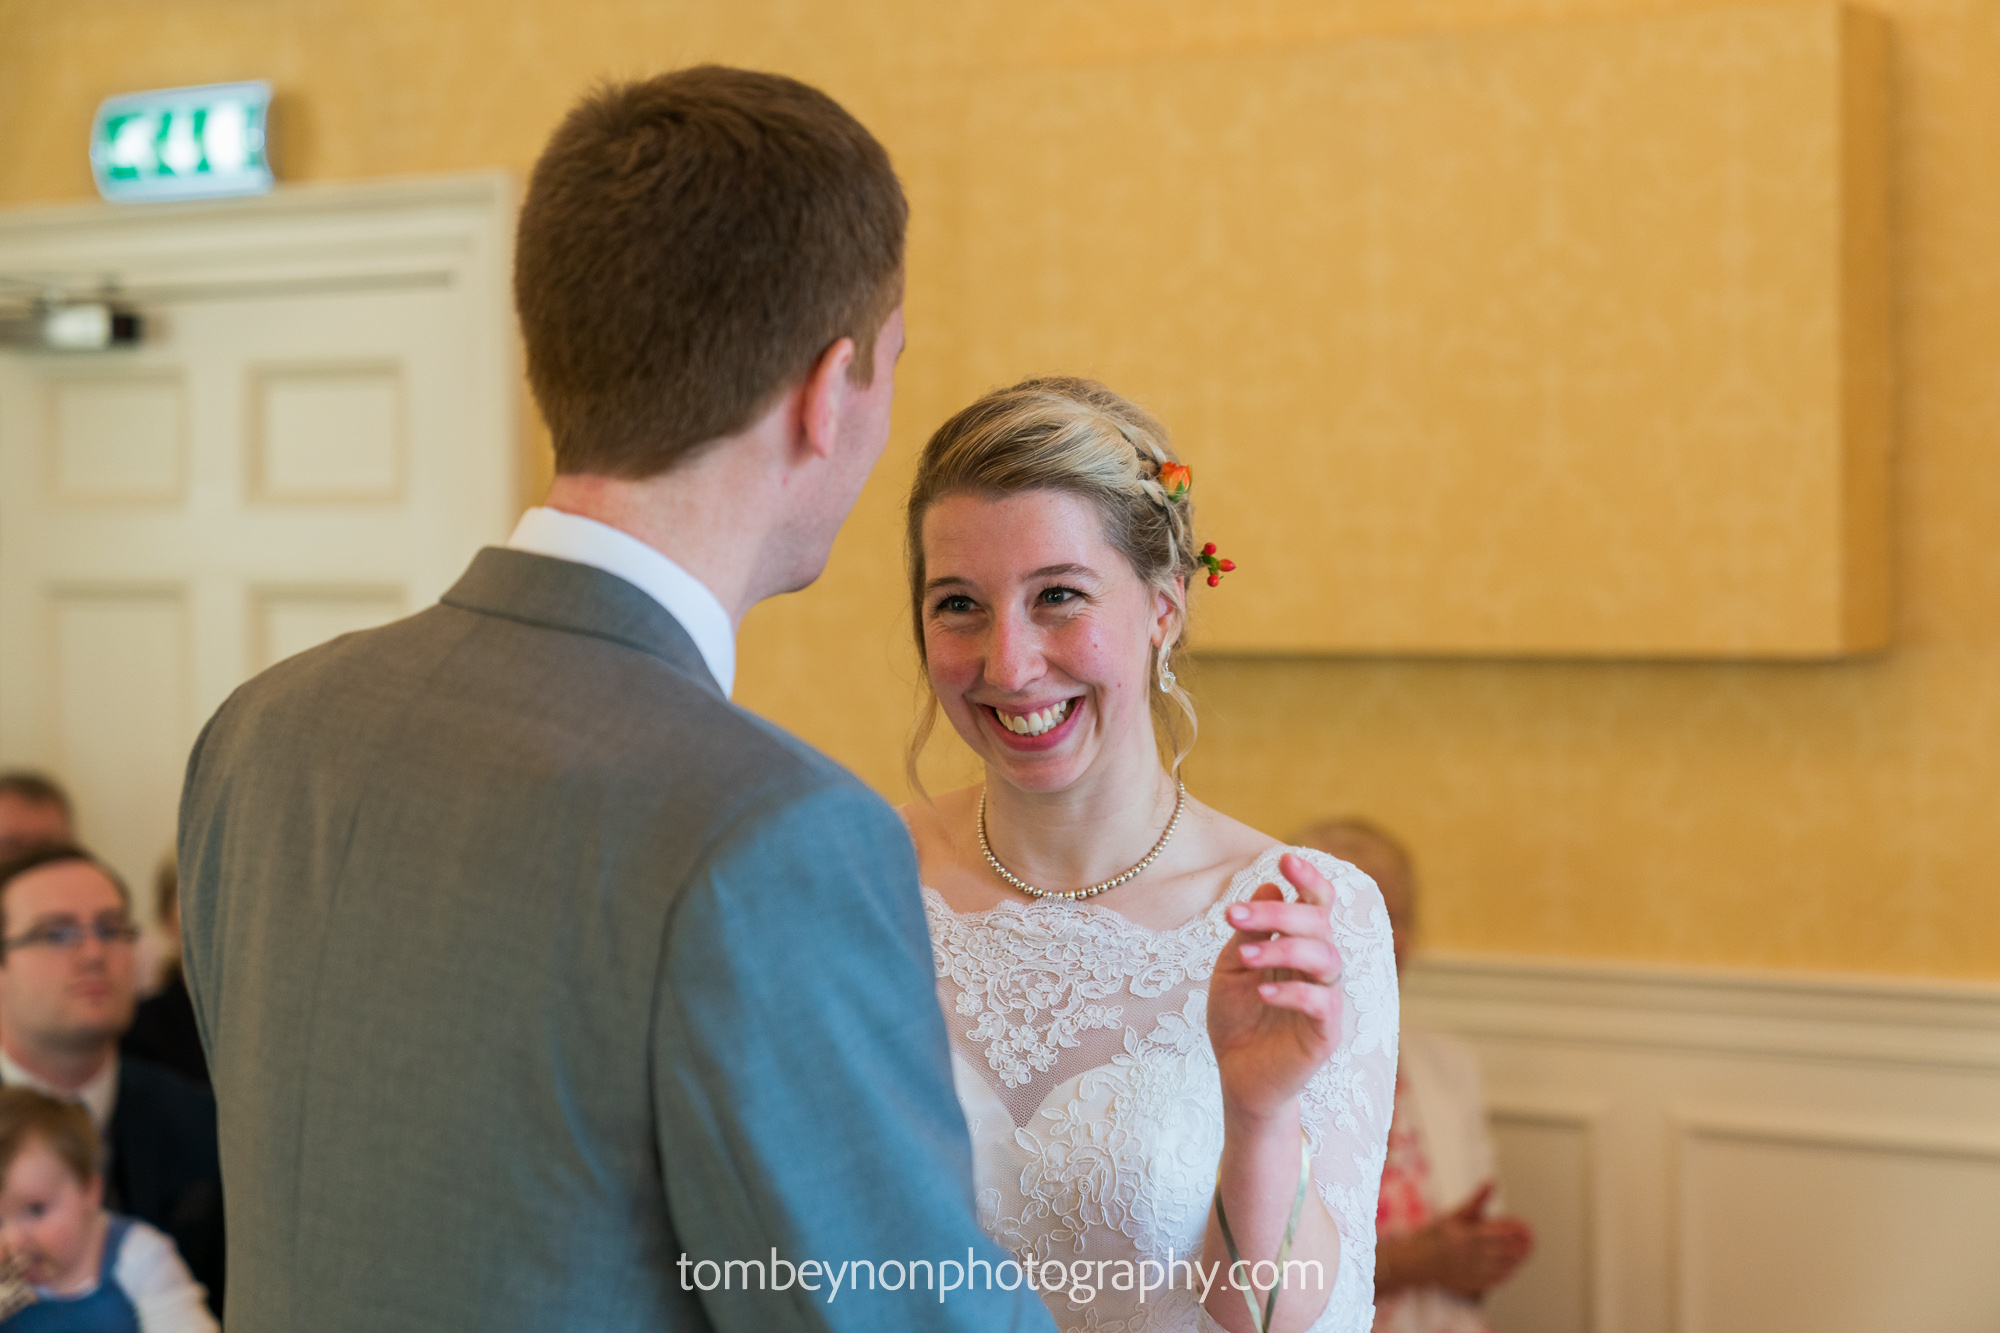 Bride smiles and laughs after vows